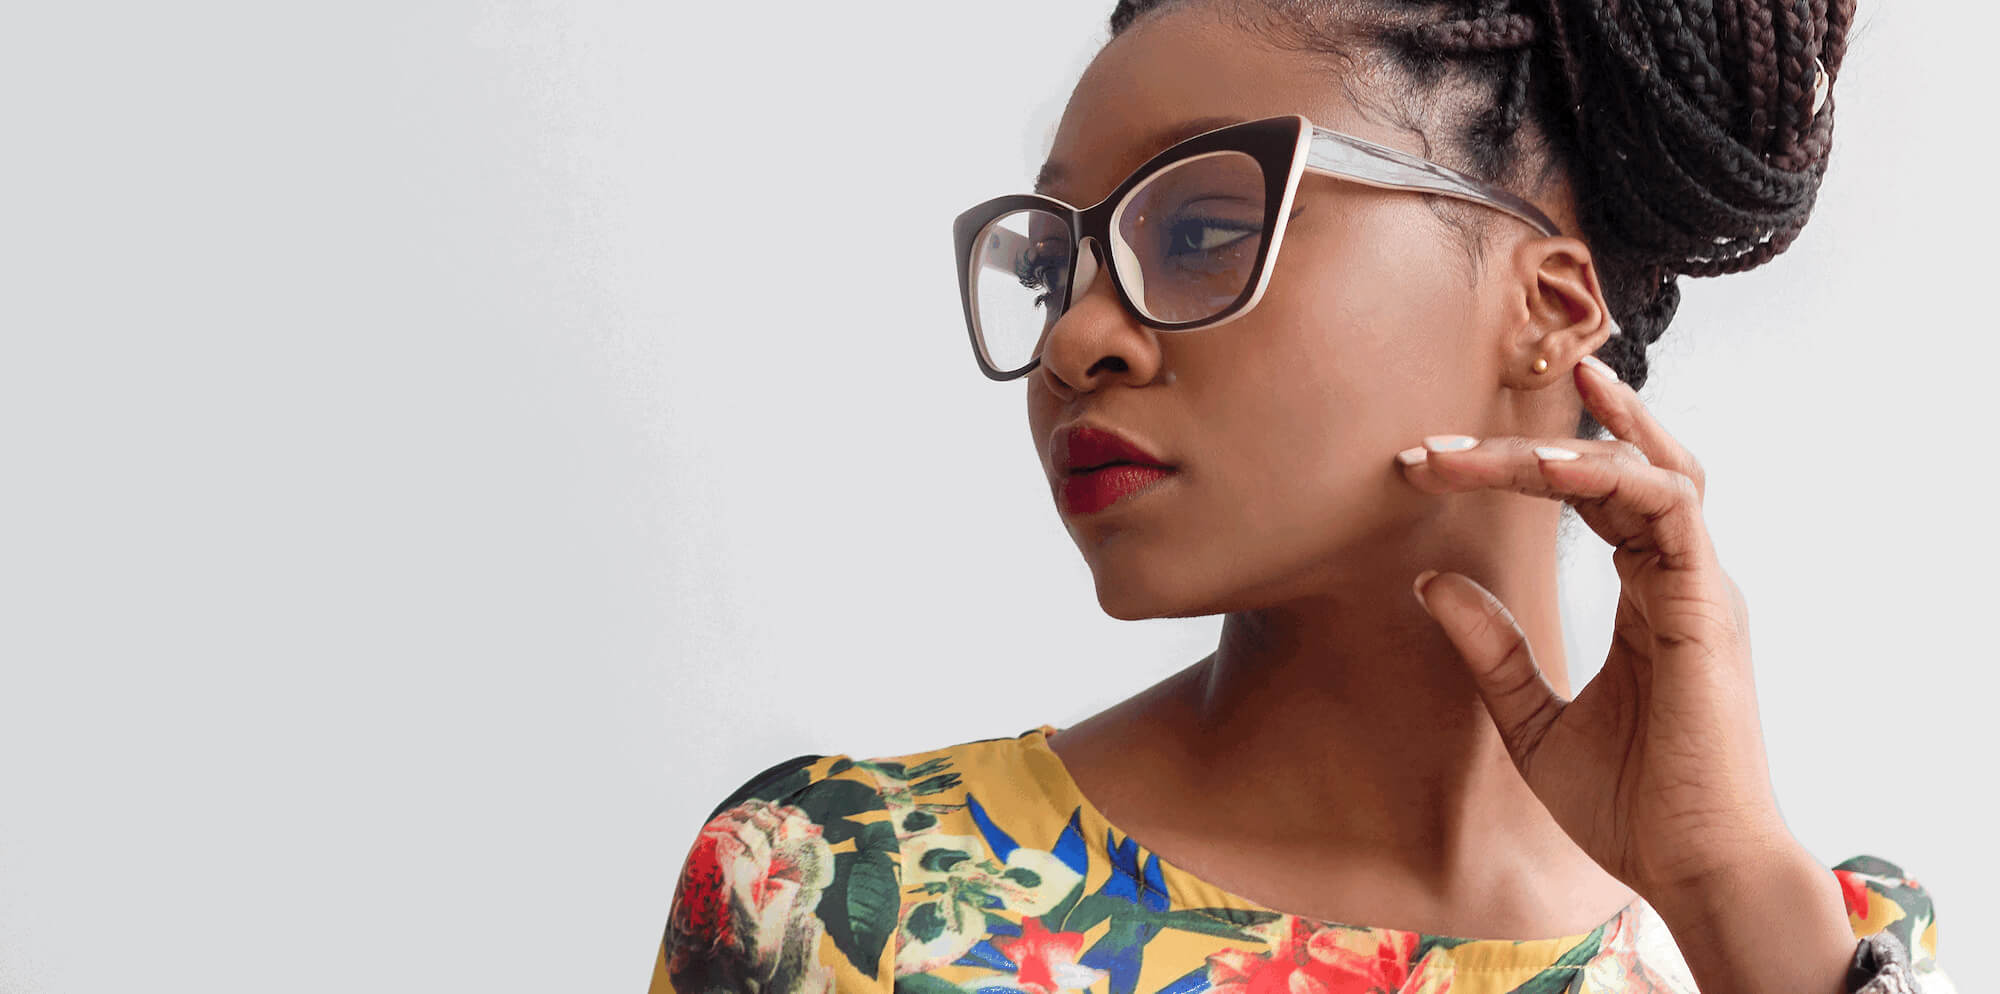 Topology Eyewear: How To Rock Oversized Frames If You Have A Petite Face